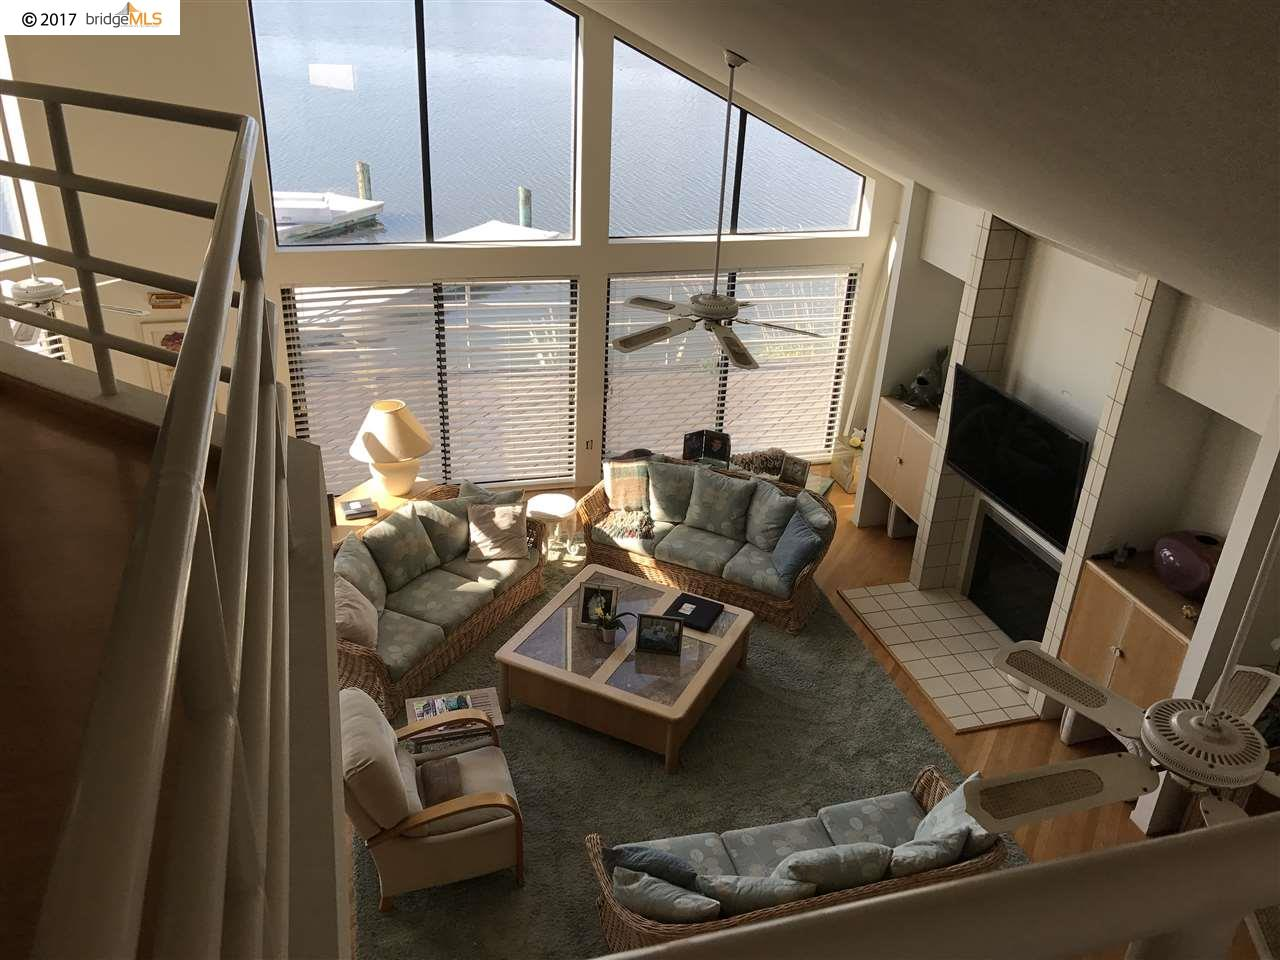 Additional photo for property listing at 4926 Cabrillo Pt  Discovery Bay, California 94505 United States